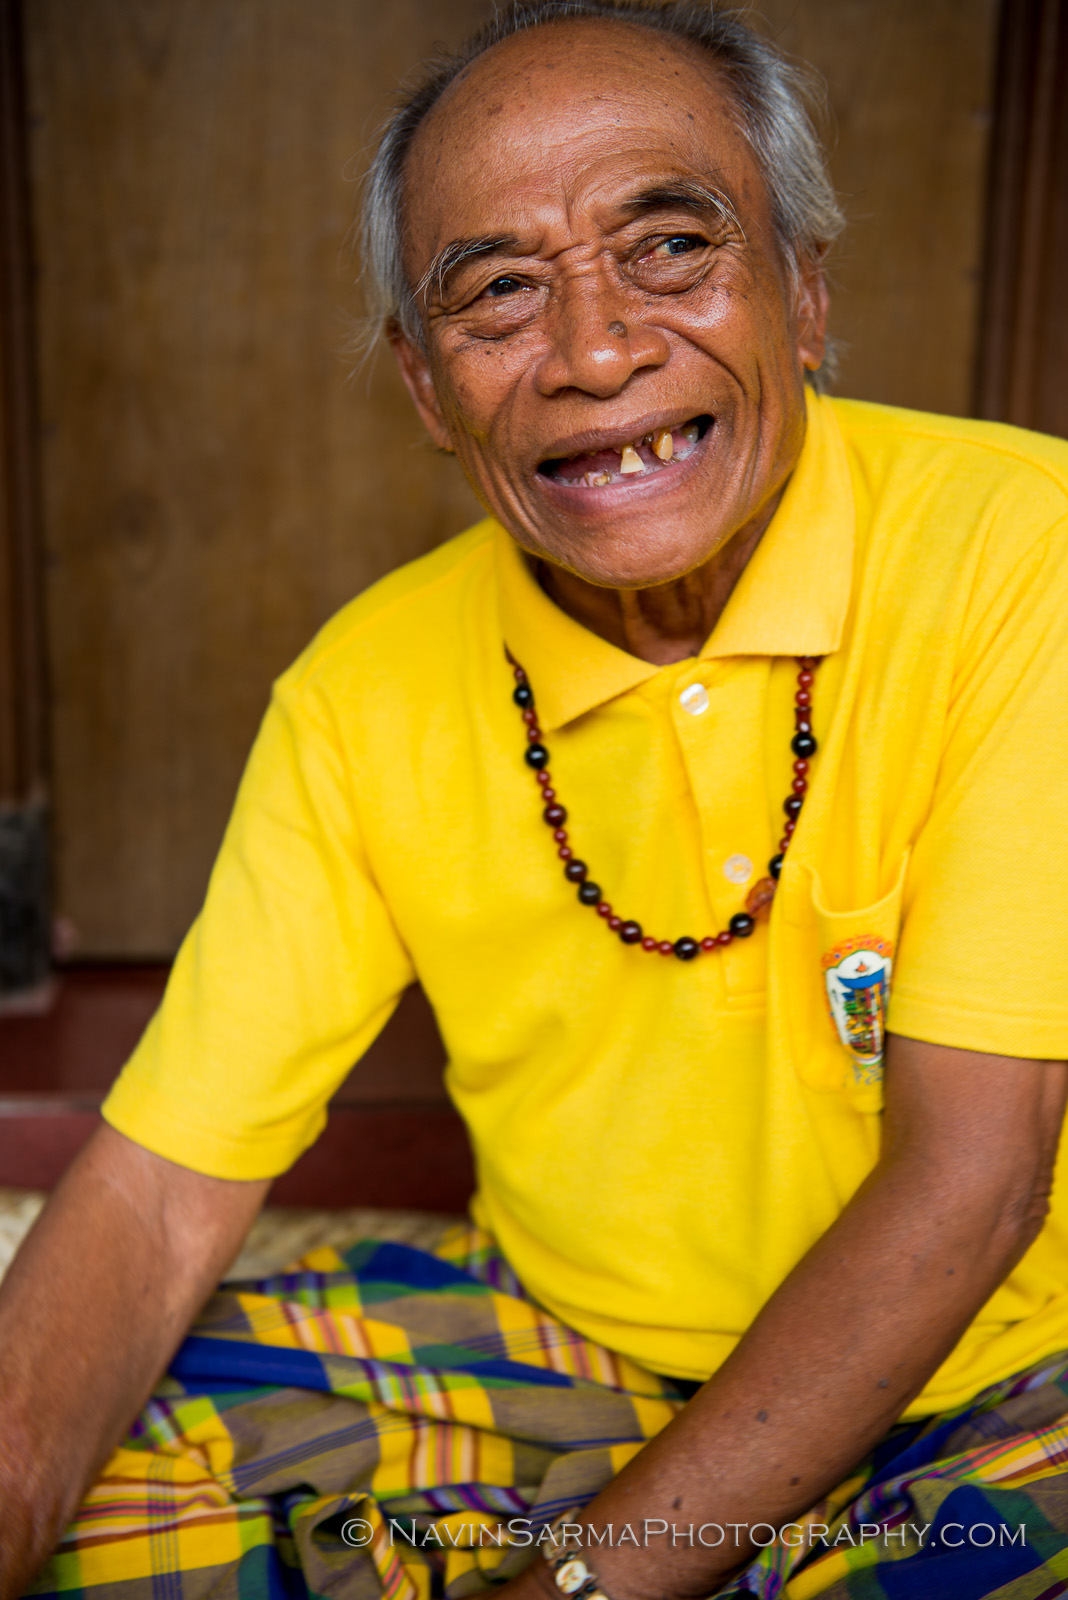 Meet Ketut Liyer, medicine man extraordinare